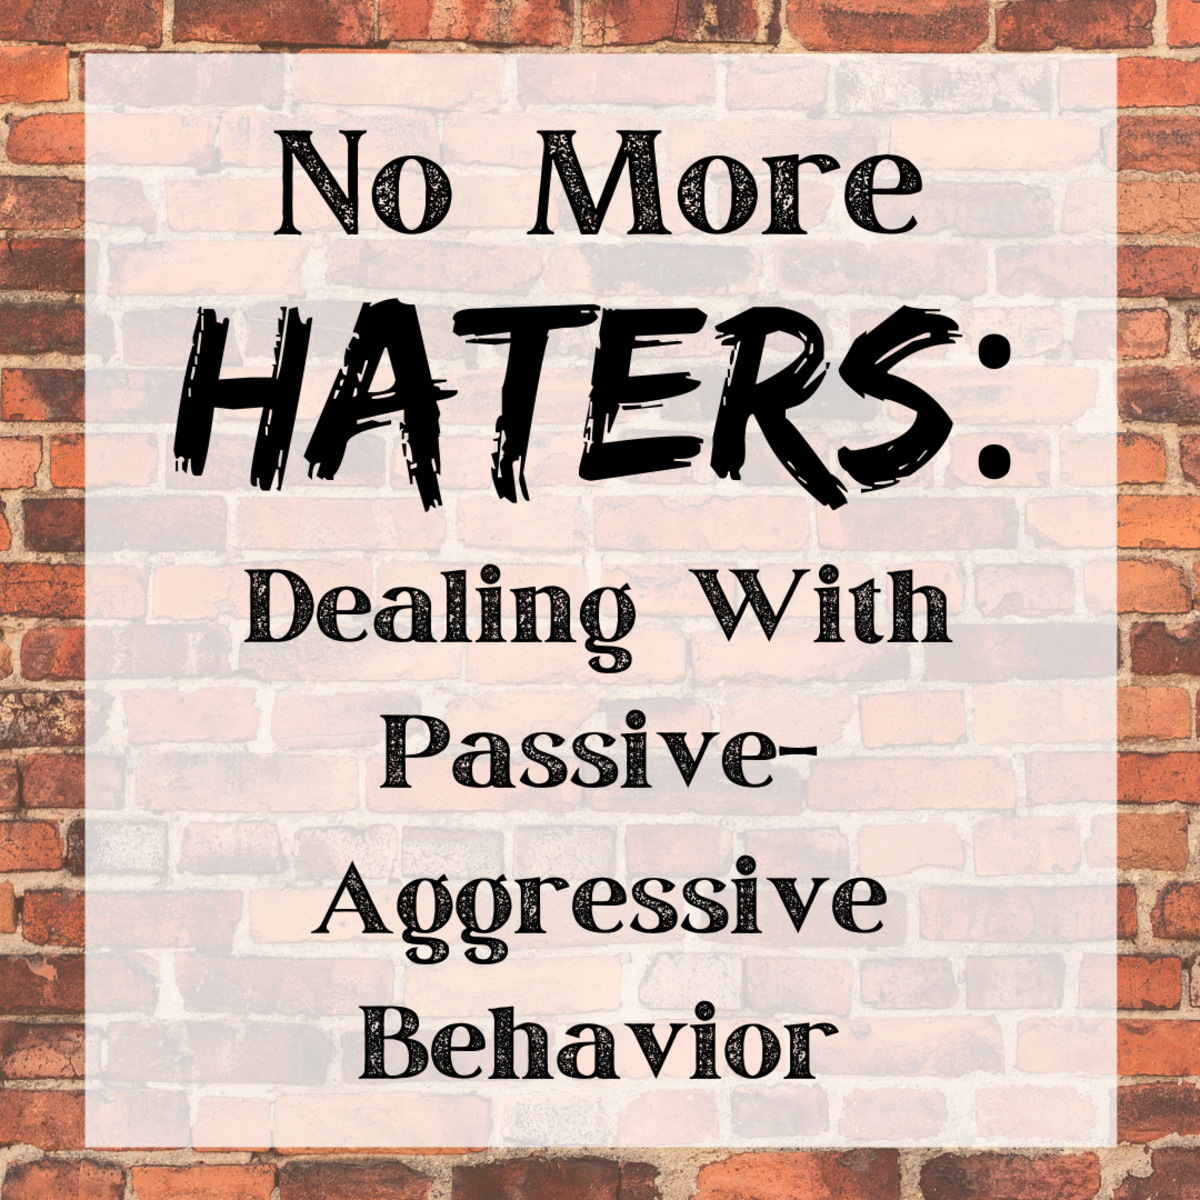 Discover how to deal with passive aggression in the workplace or anywhere else in your life.